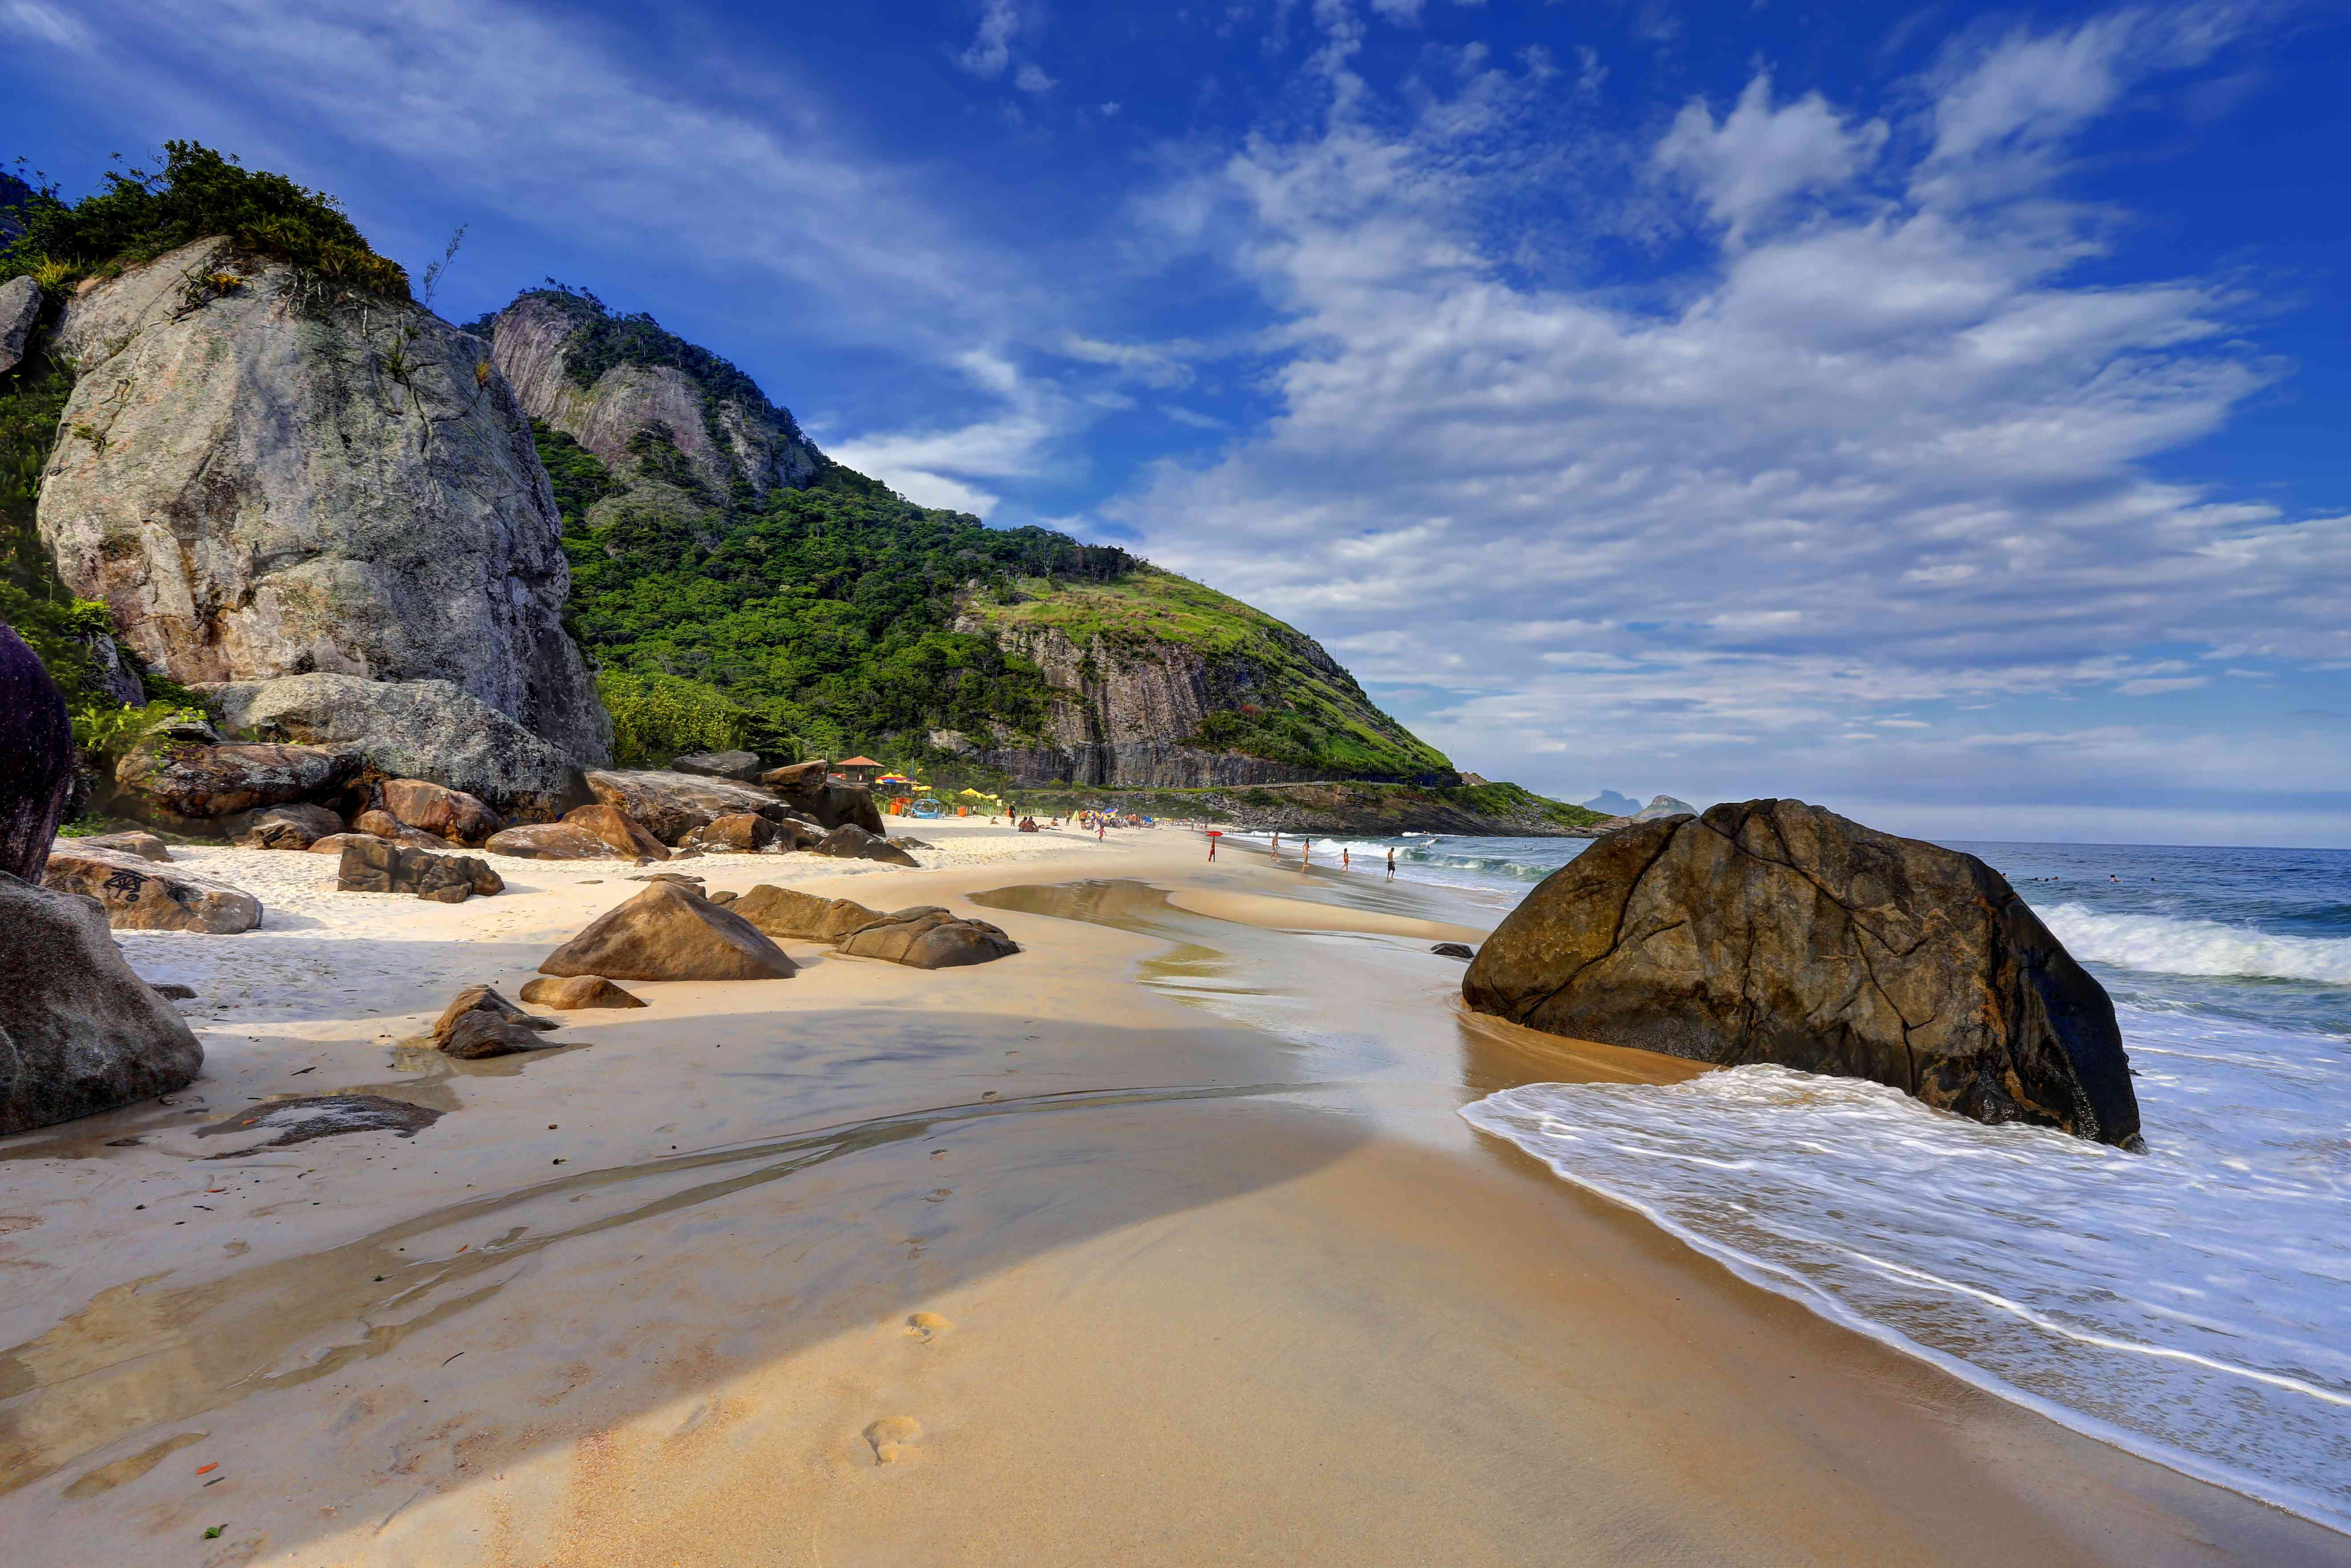 large rocks on a beach in Brazil with a mountain in the background